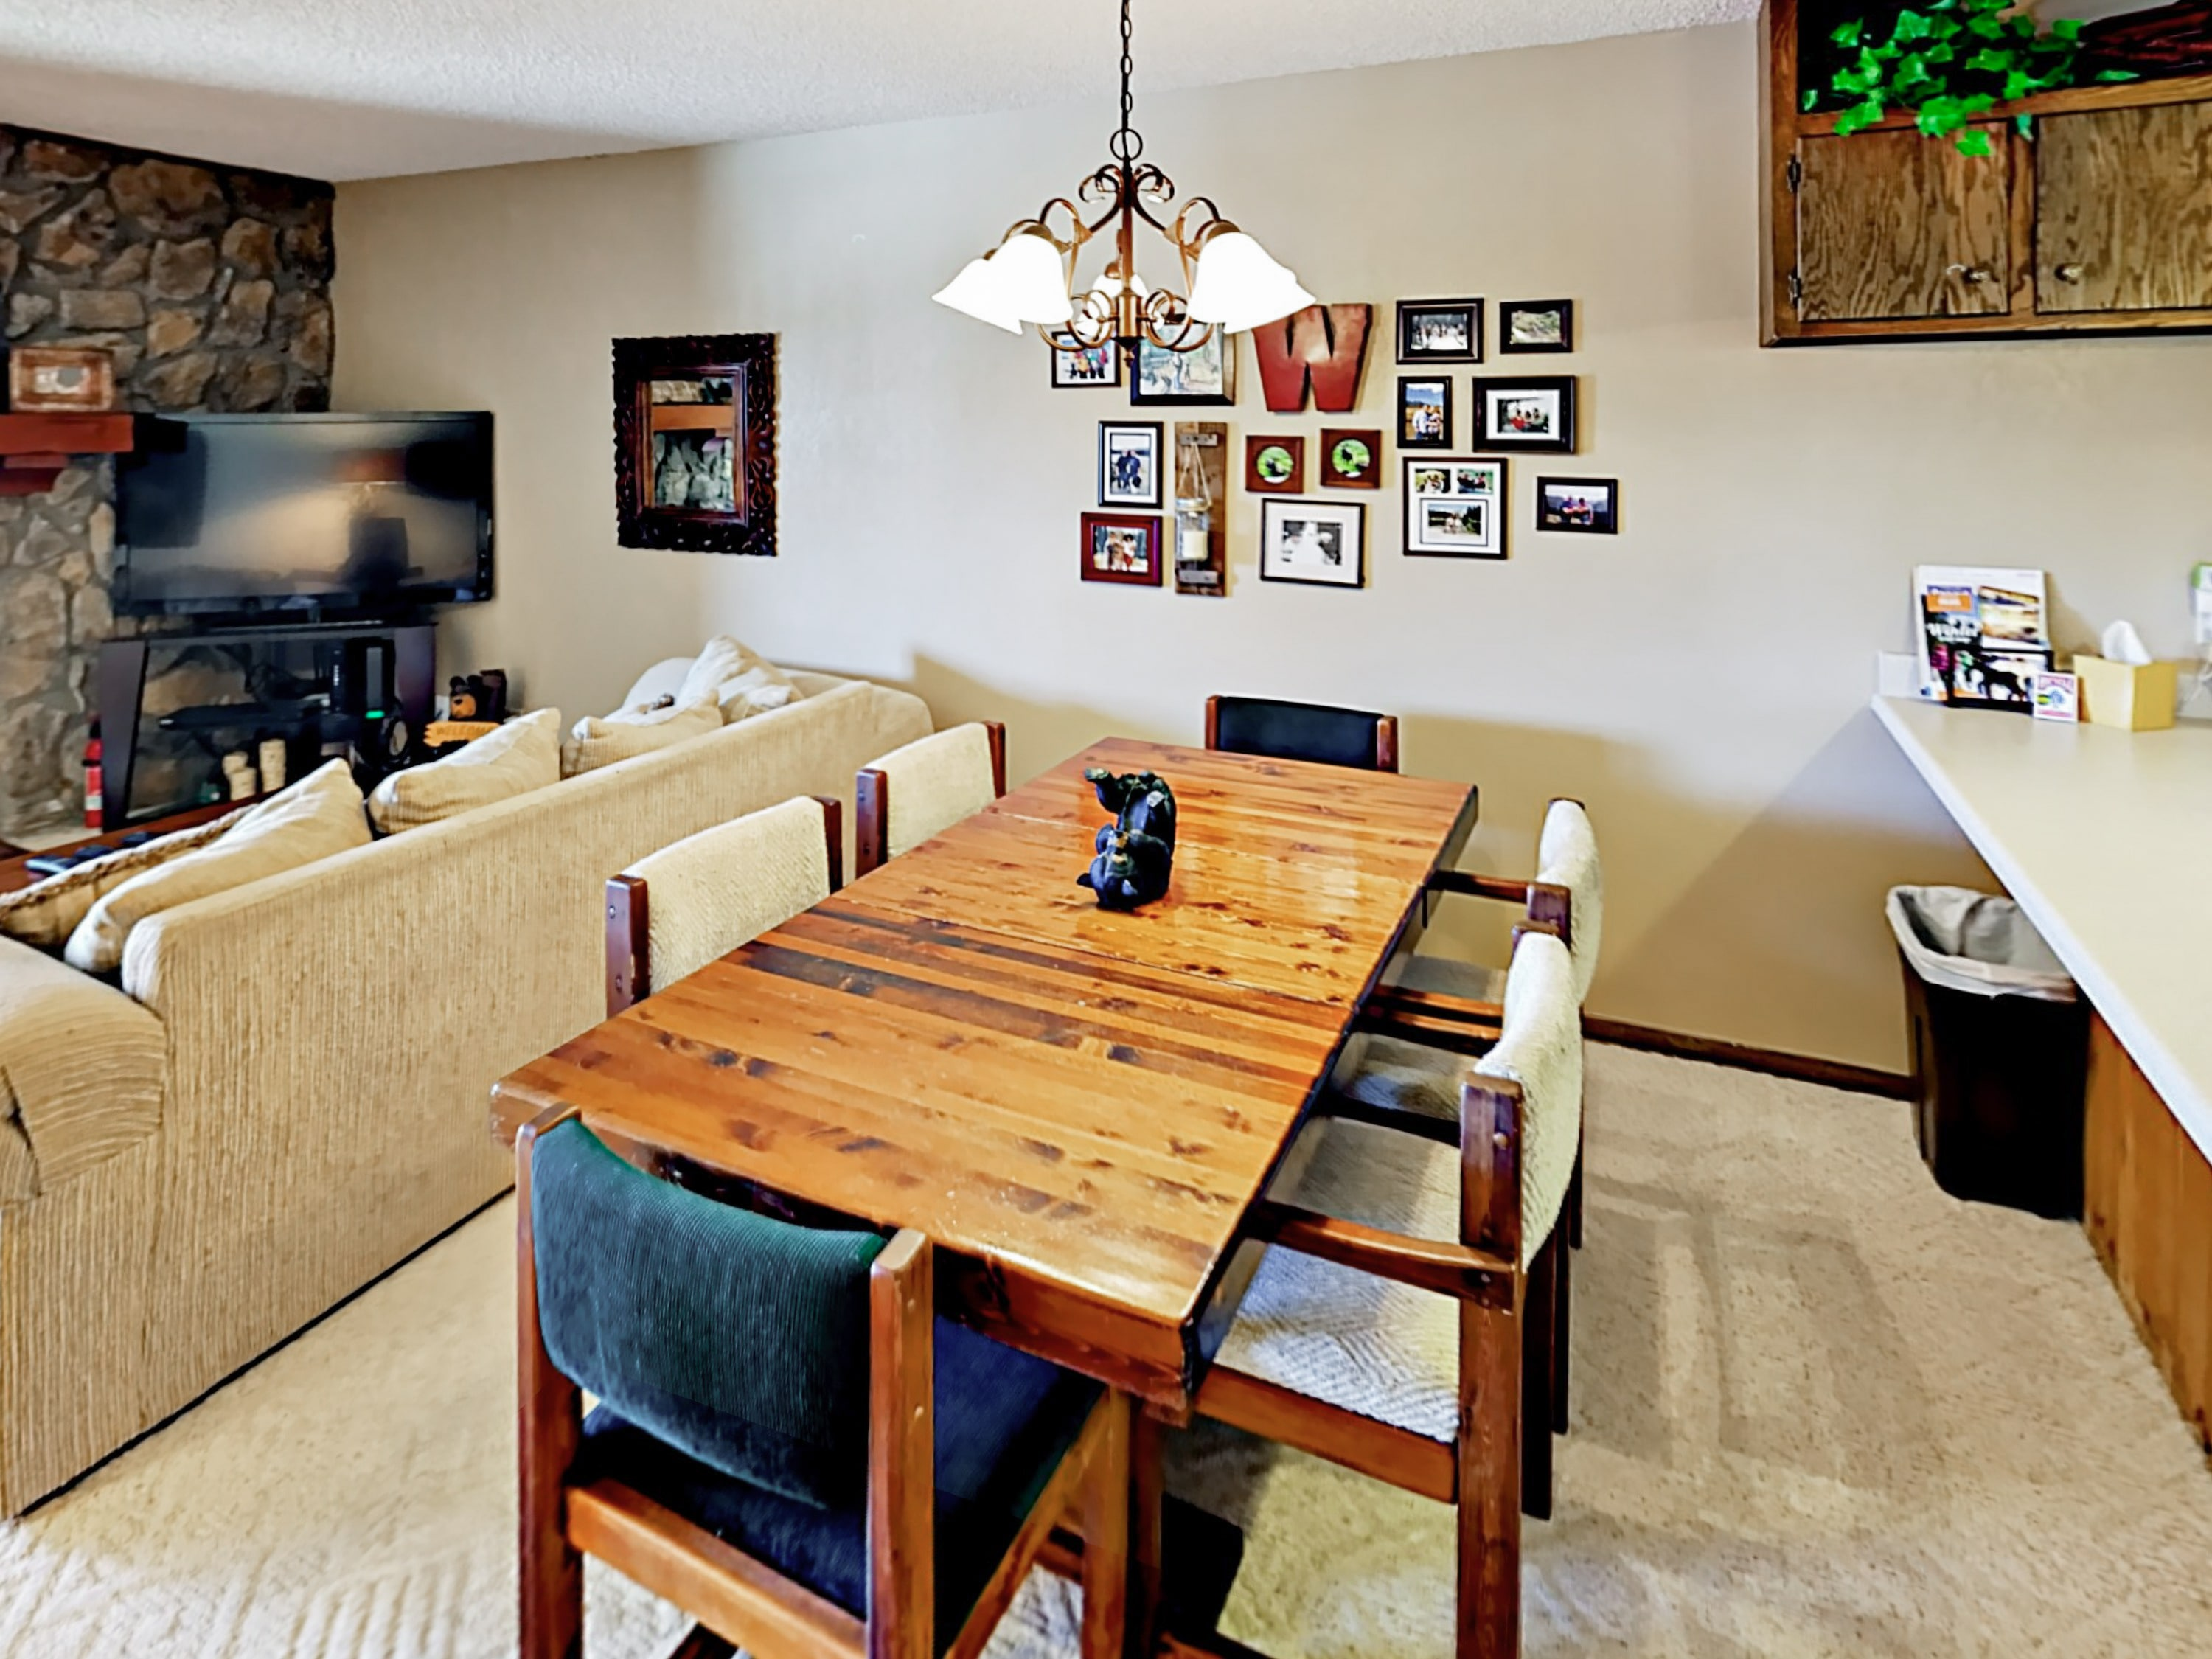 A formal dining table seats 6 to special meals.